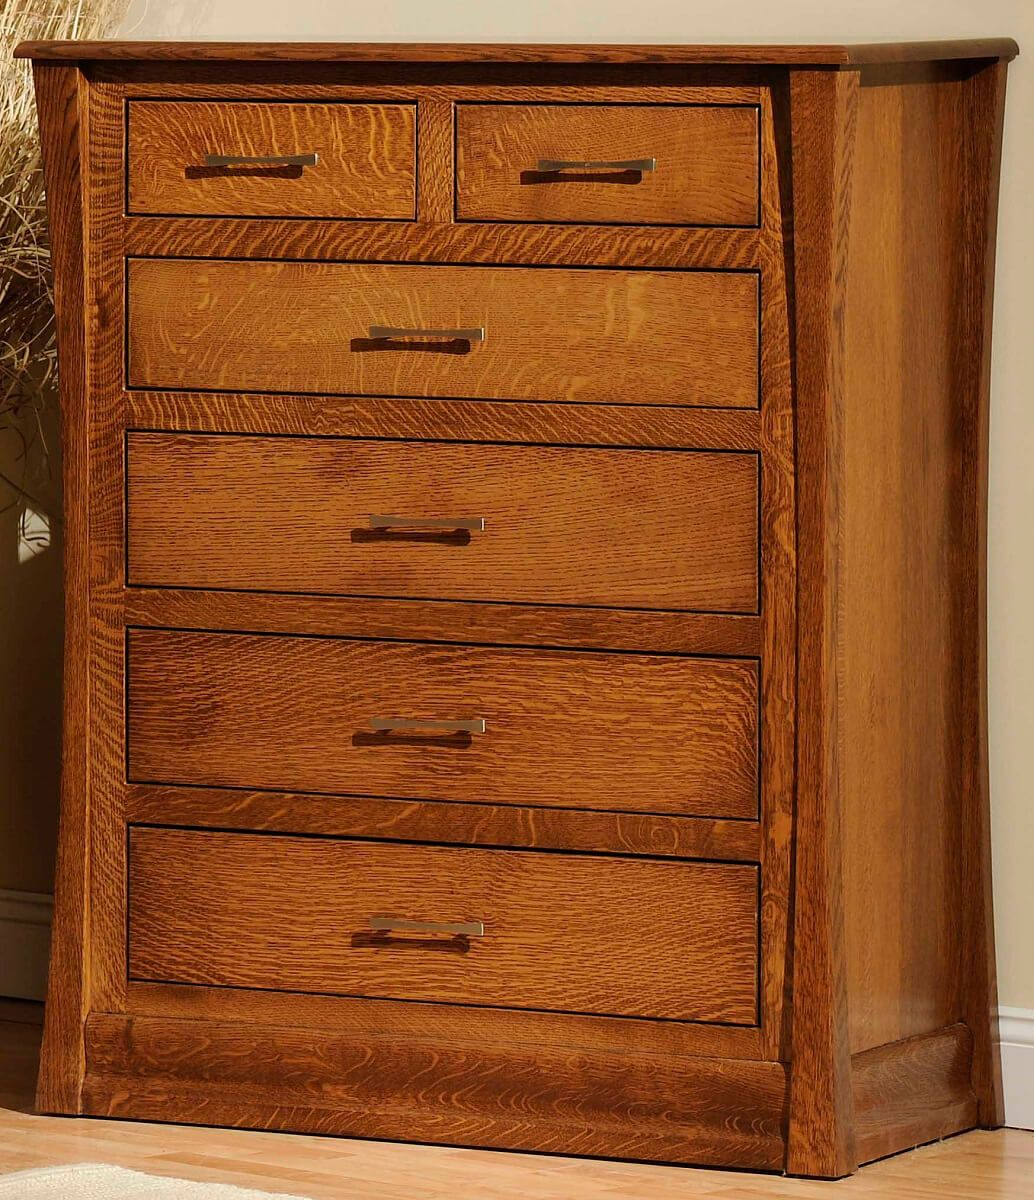 Our Rosewood Chest of Drawers shown in Quartersawn White Oak.